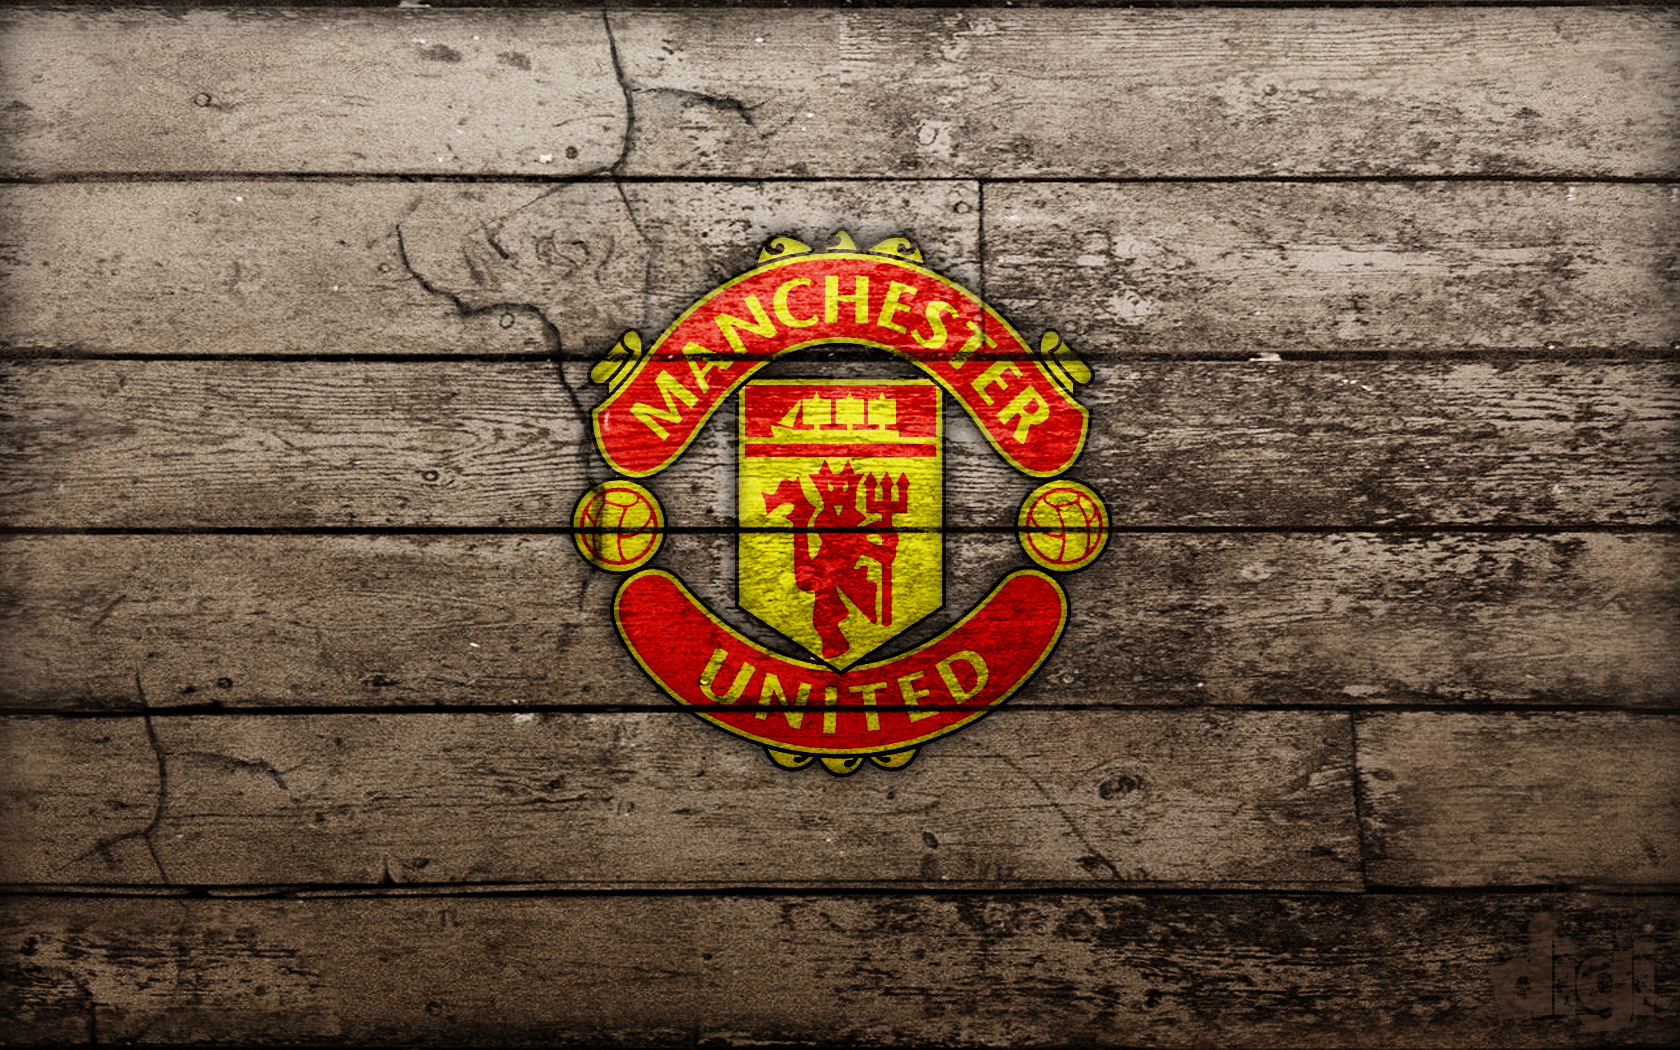 Image manchesterunited logo wallpaper004g football wiki manchesterunited logo wallpaper004g voltagebd Image collections